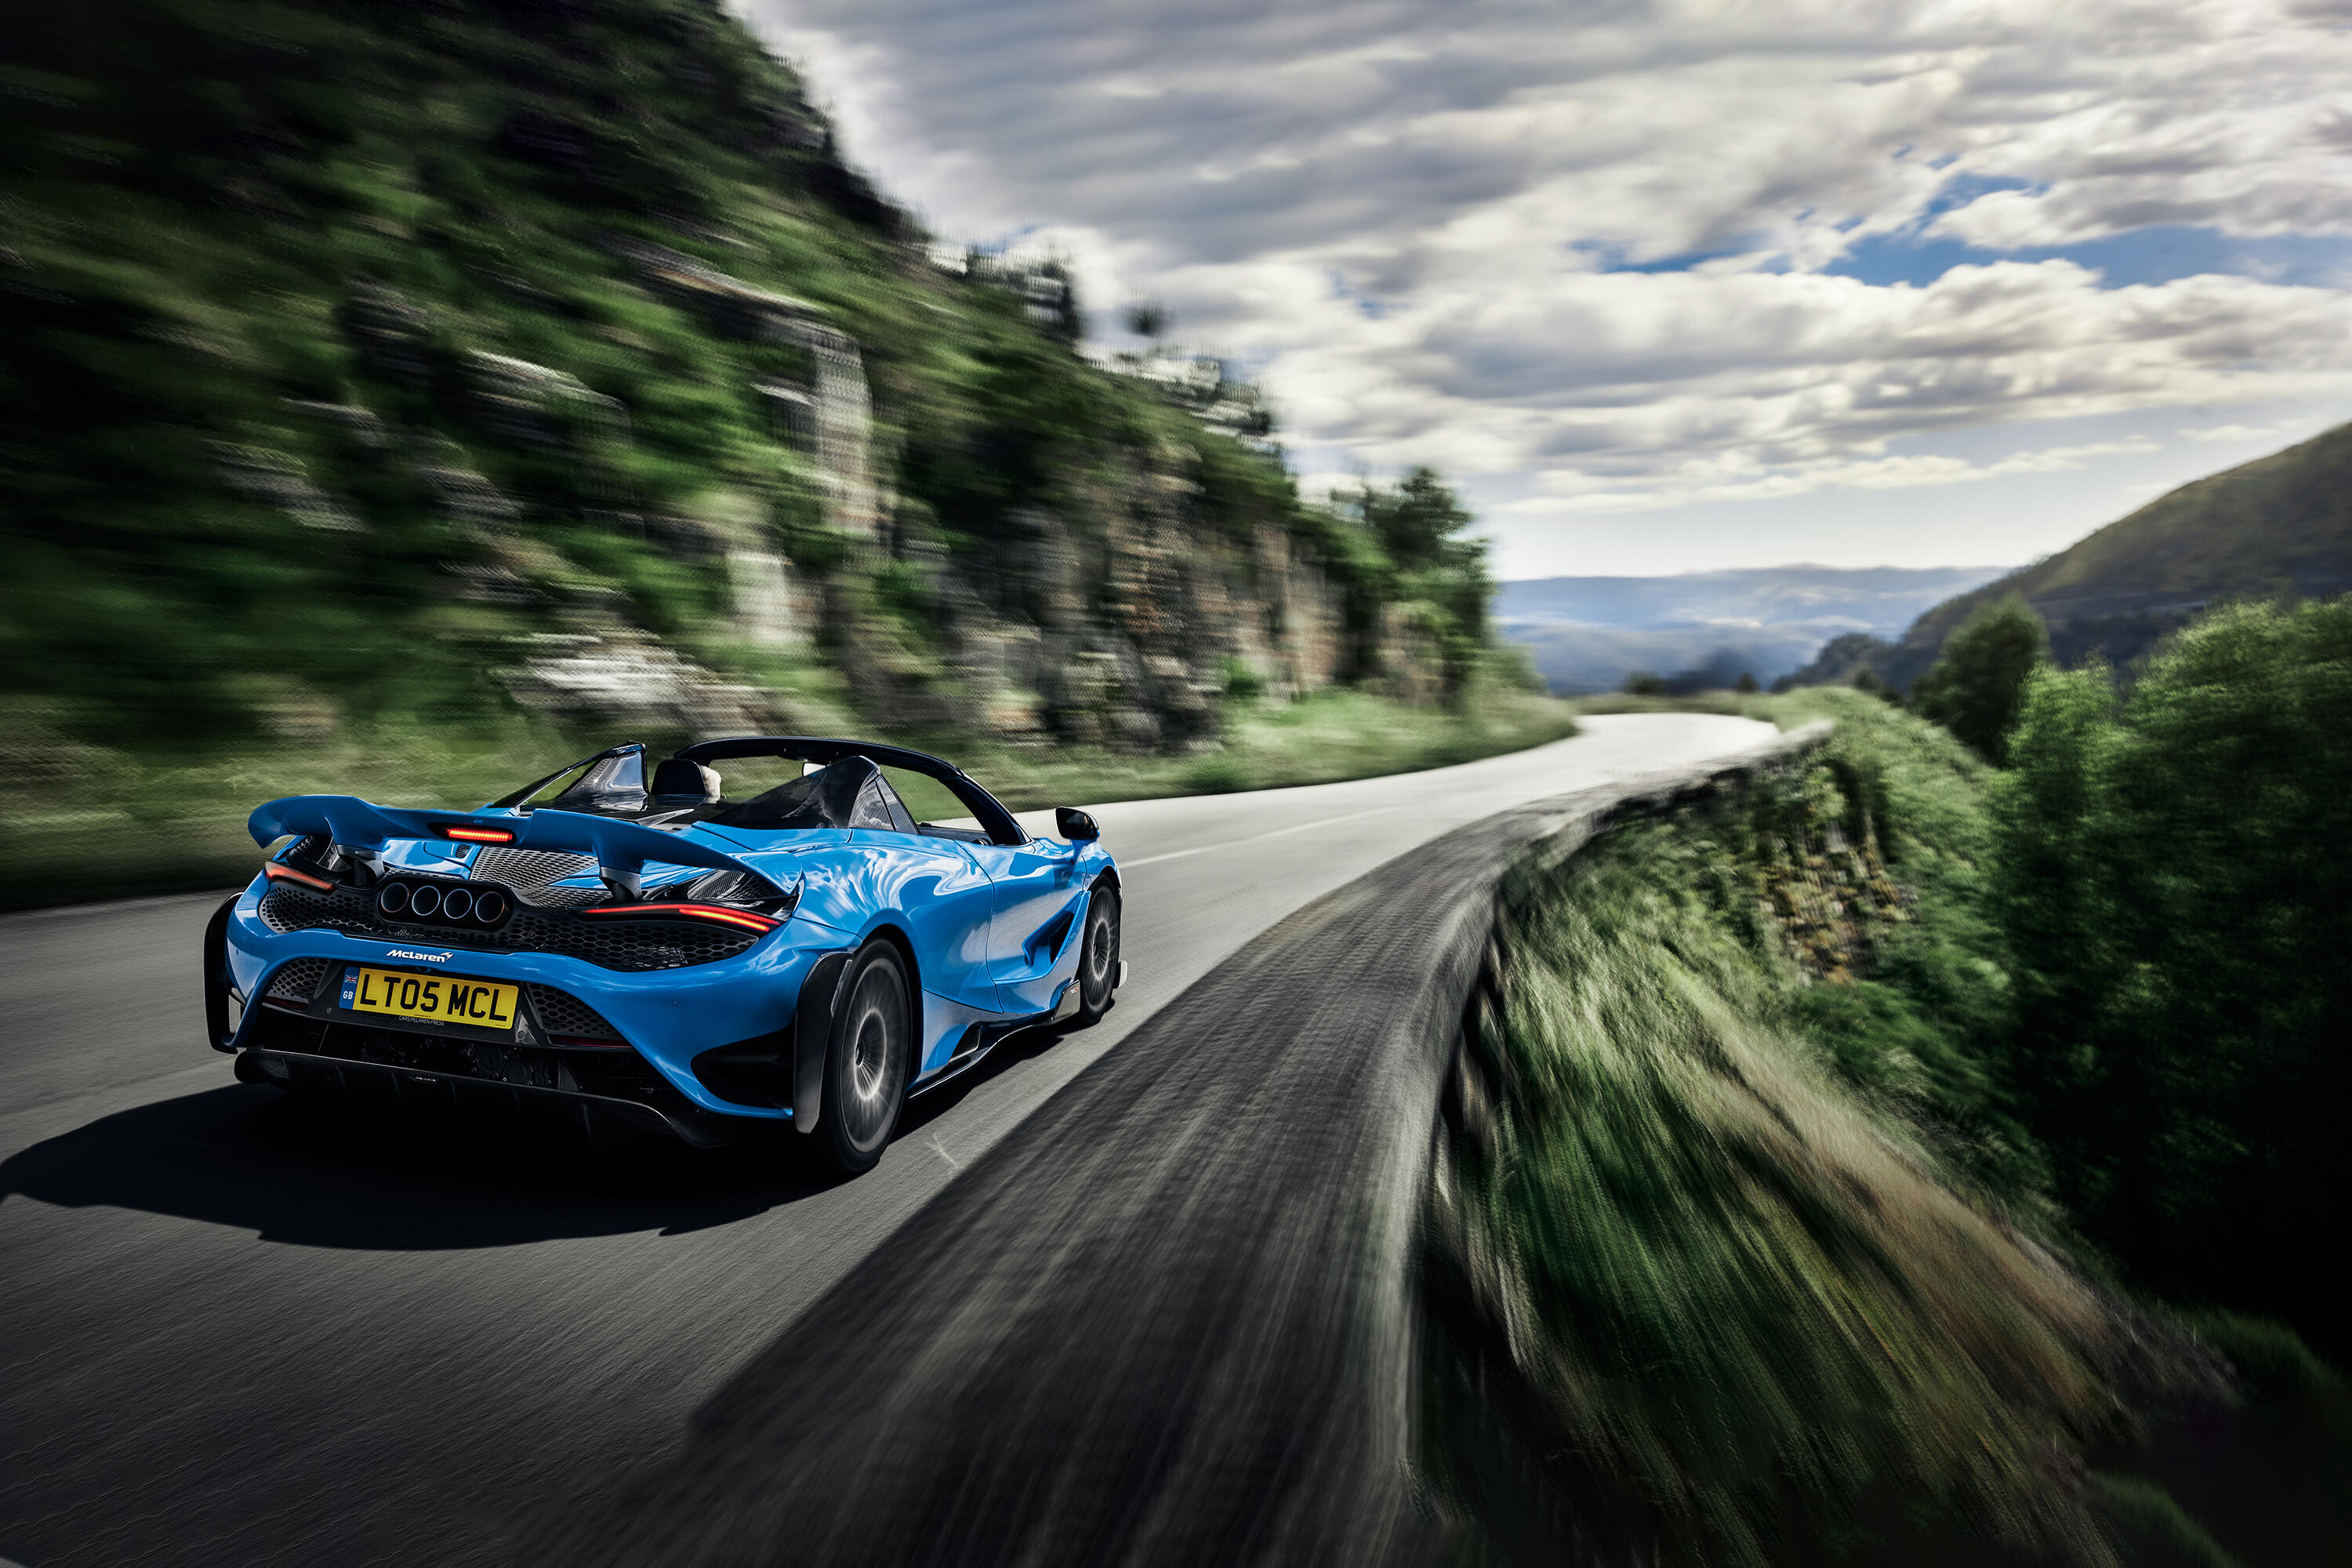 McLaren's 765LT Spider provides supercar thrills without a top – Roadshow